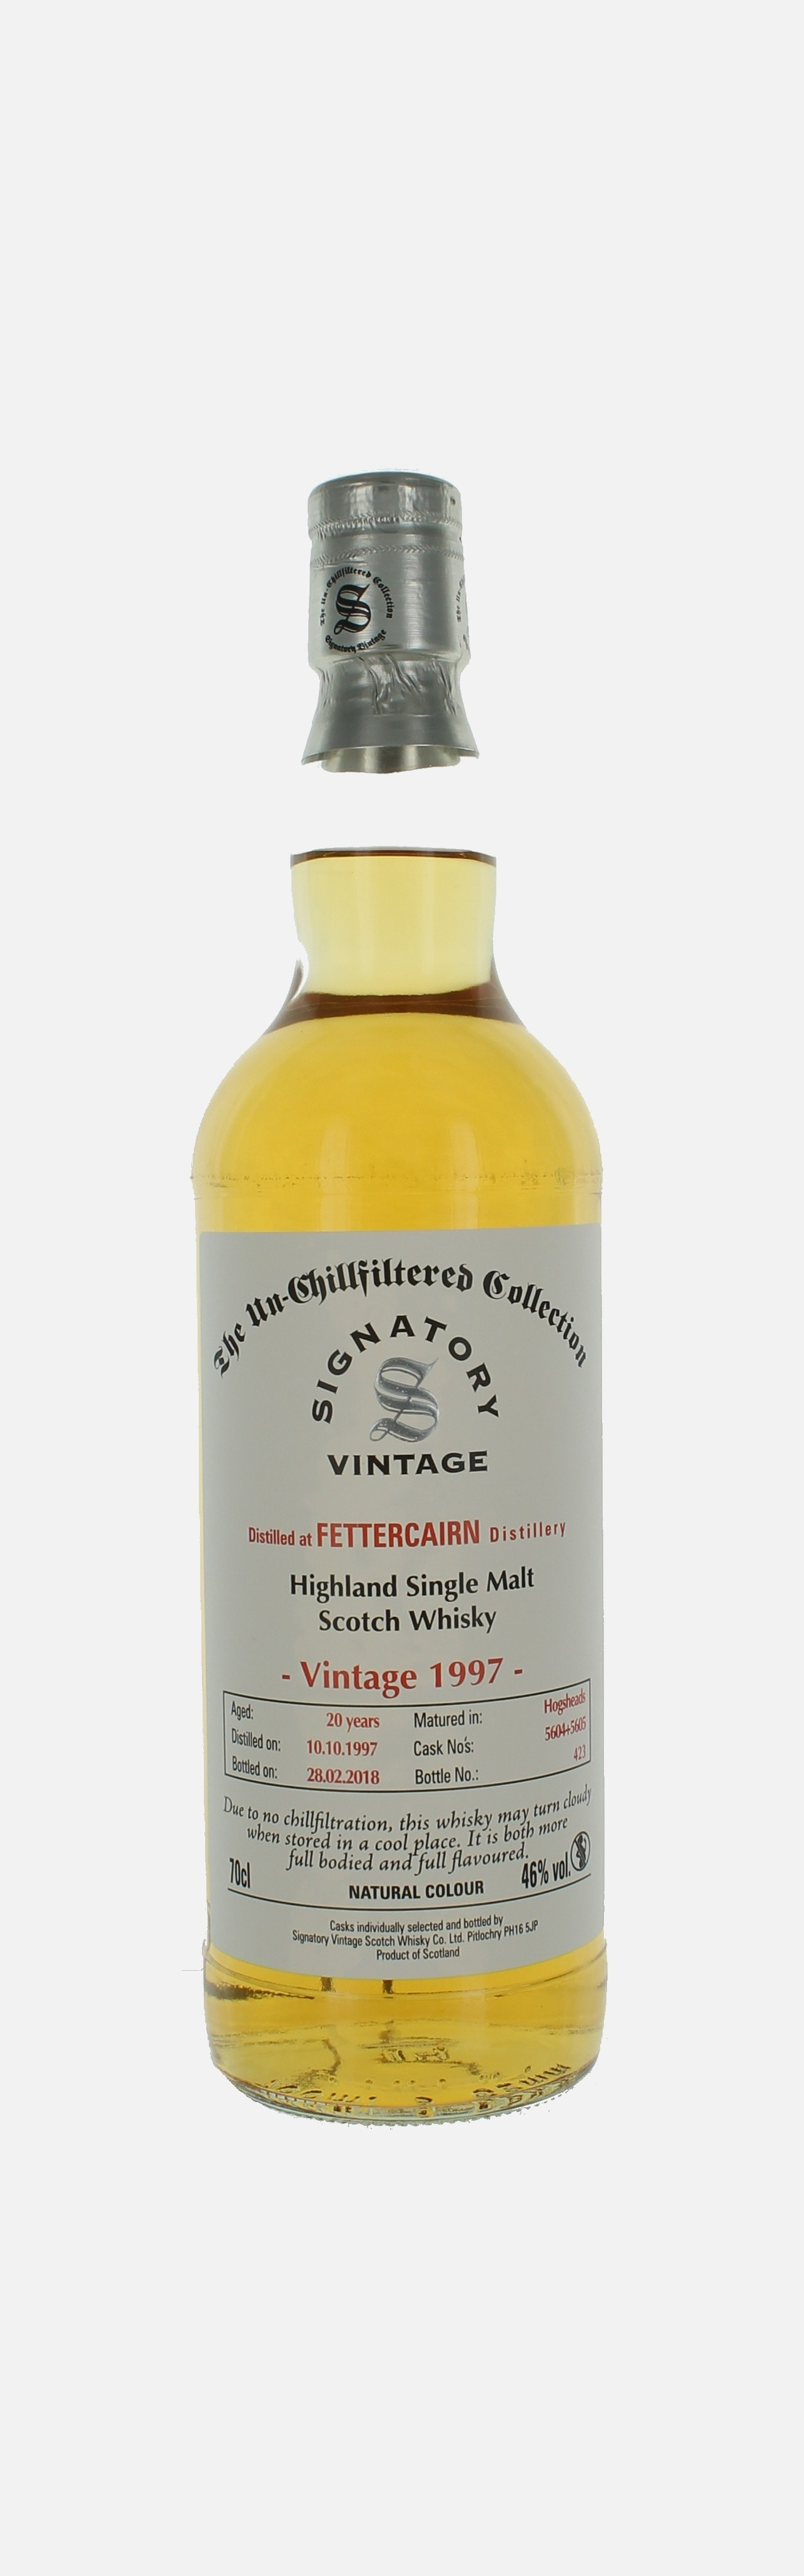 Fettercairn, Single Malt Scotch Whisky, Highland